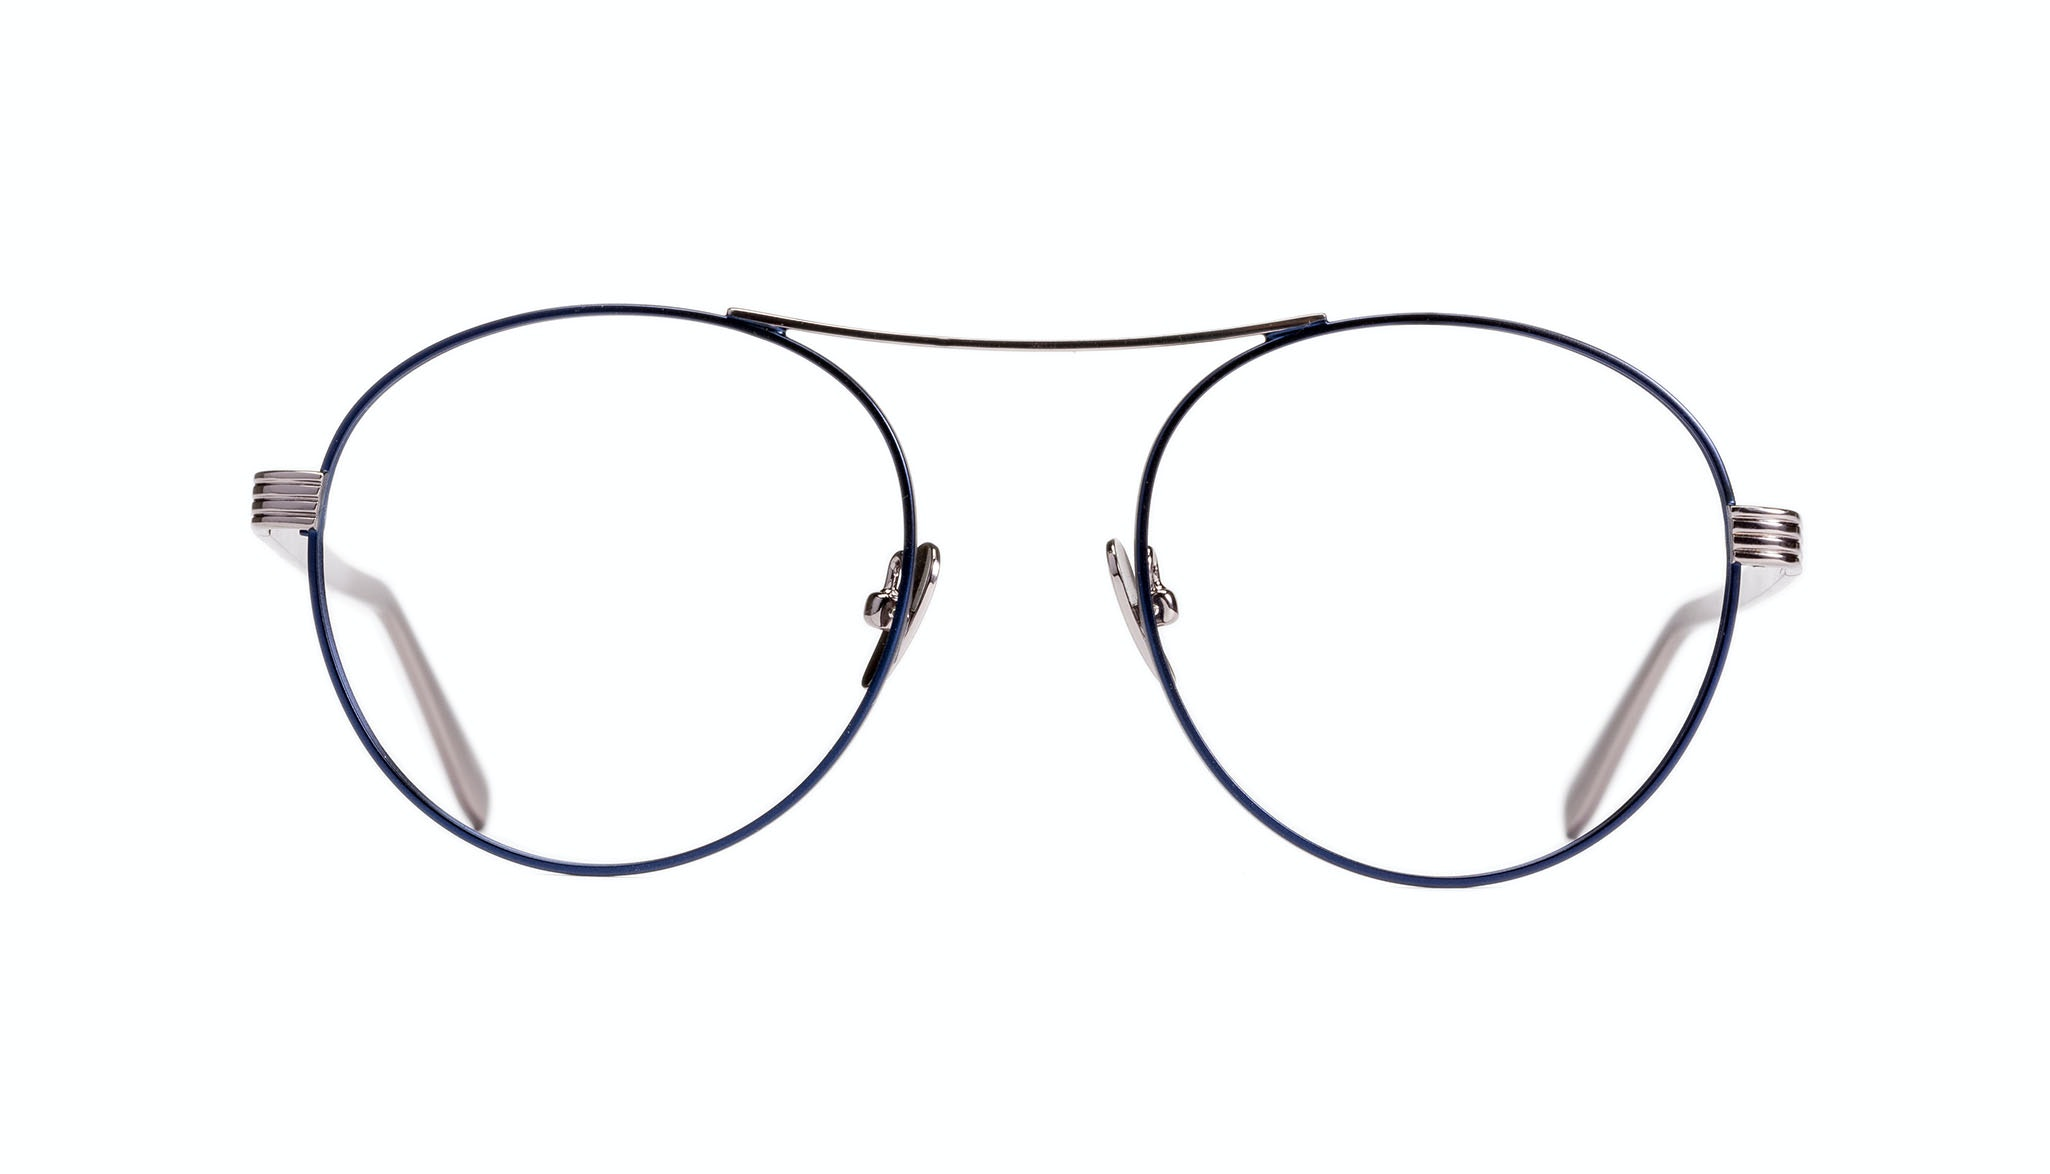 Affordable Fashion Glasses Round Eyeglasses Women Prize Midnight